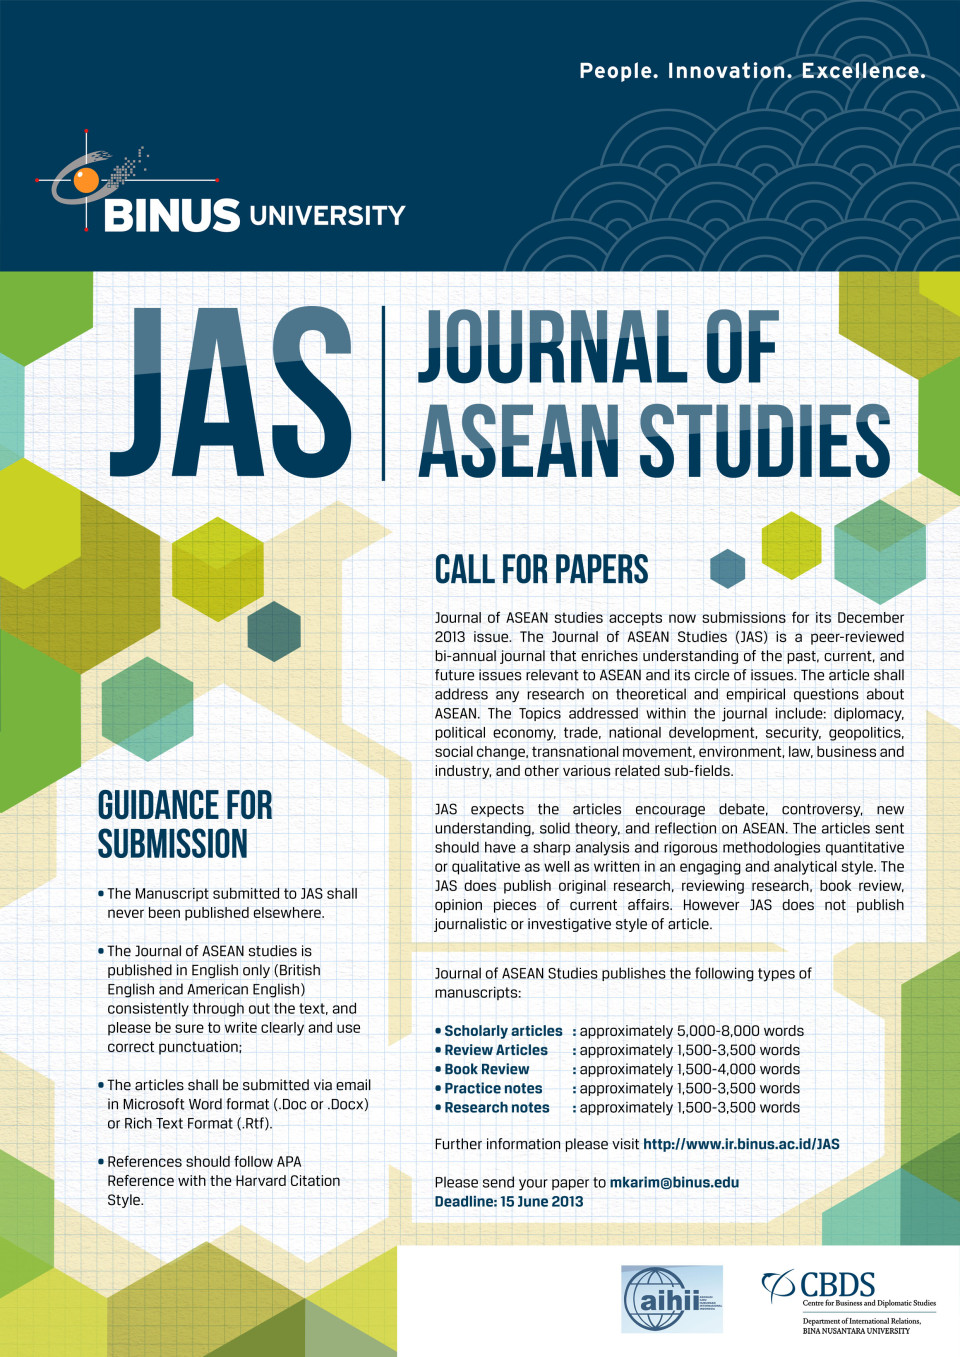 Media research journals call for papers